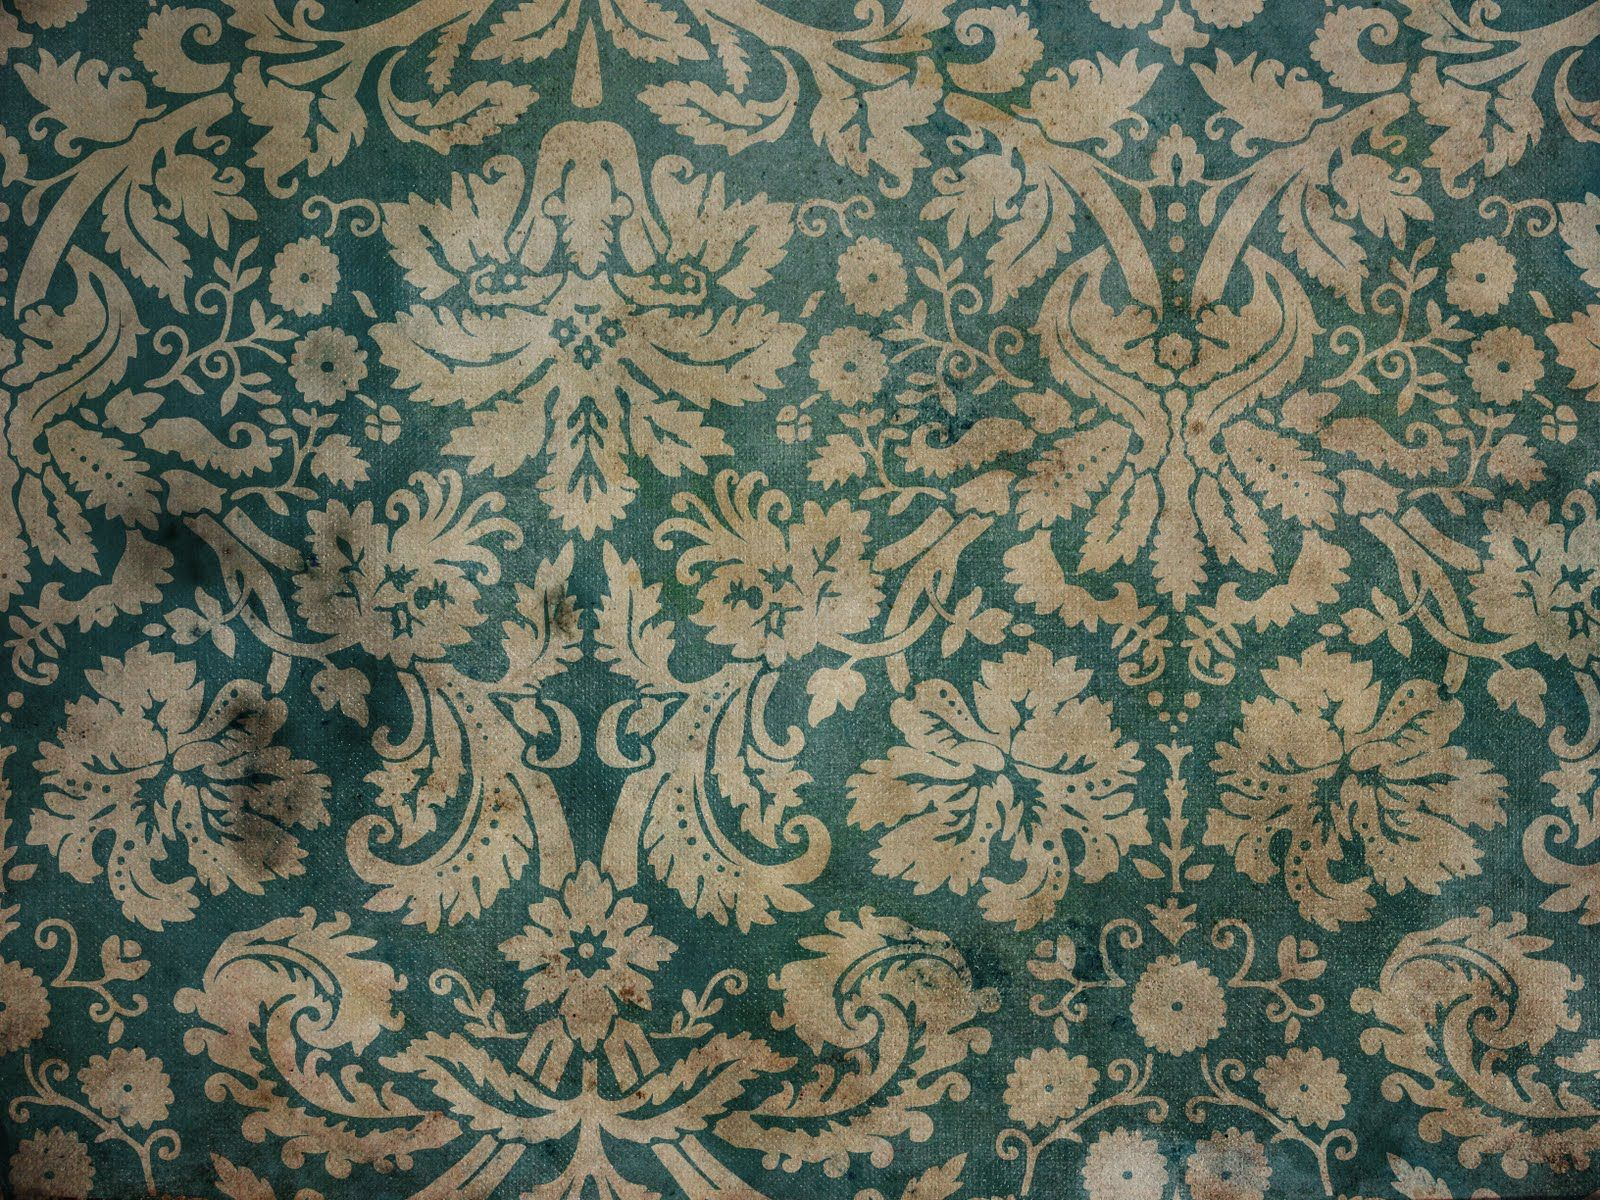 Just Want To Wallpaper One Wall With This So Bad Vintage Wallpaper Patterns Vintage Wallpaper Antique Wallpaper